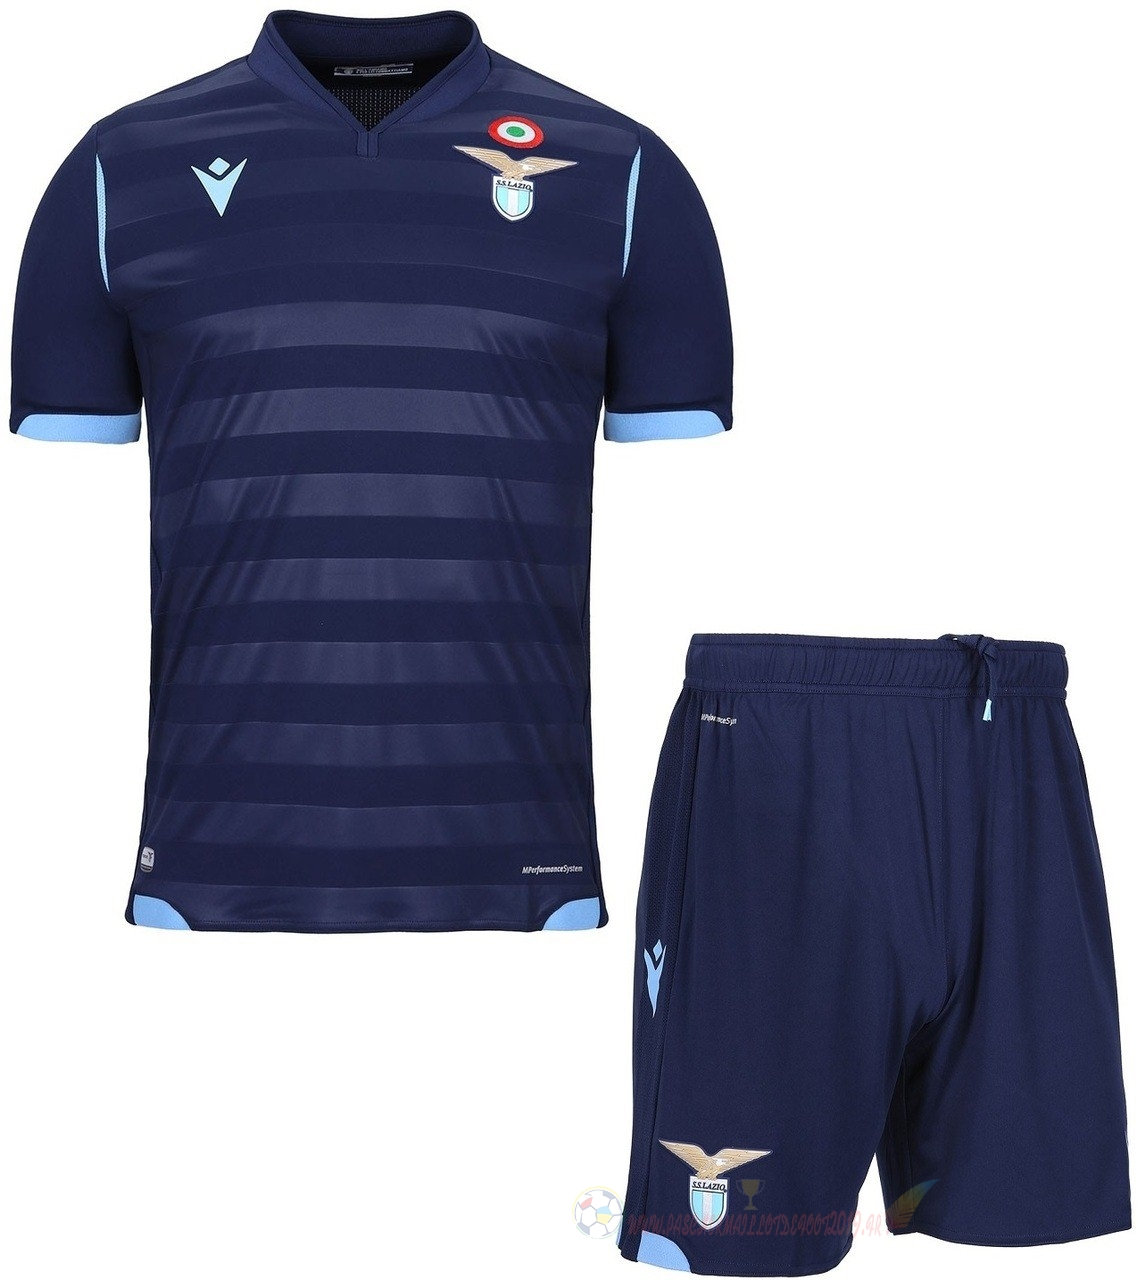 Destockage Maillot De Foot Macron Third Ensemble Enfant Lazio 2019 2020 Bleu Marine